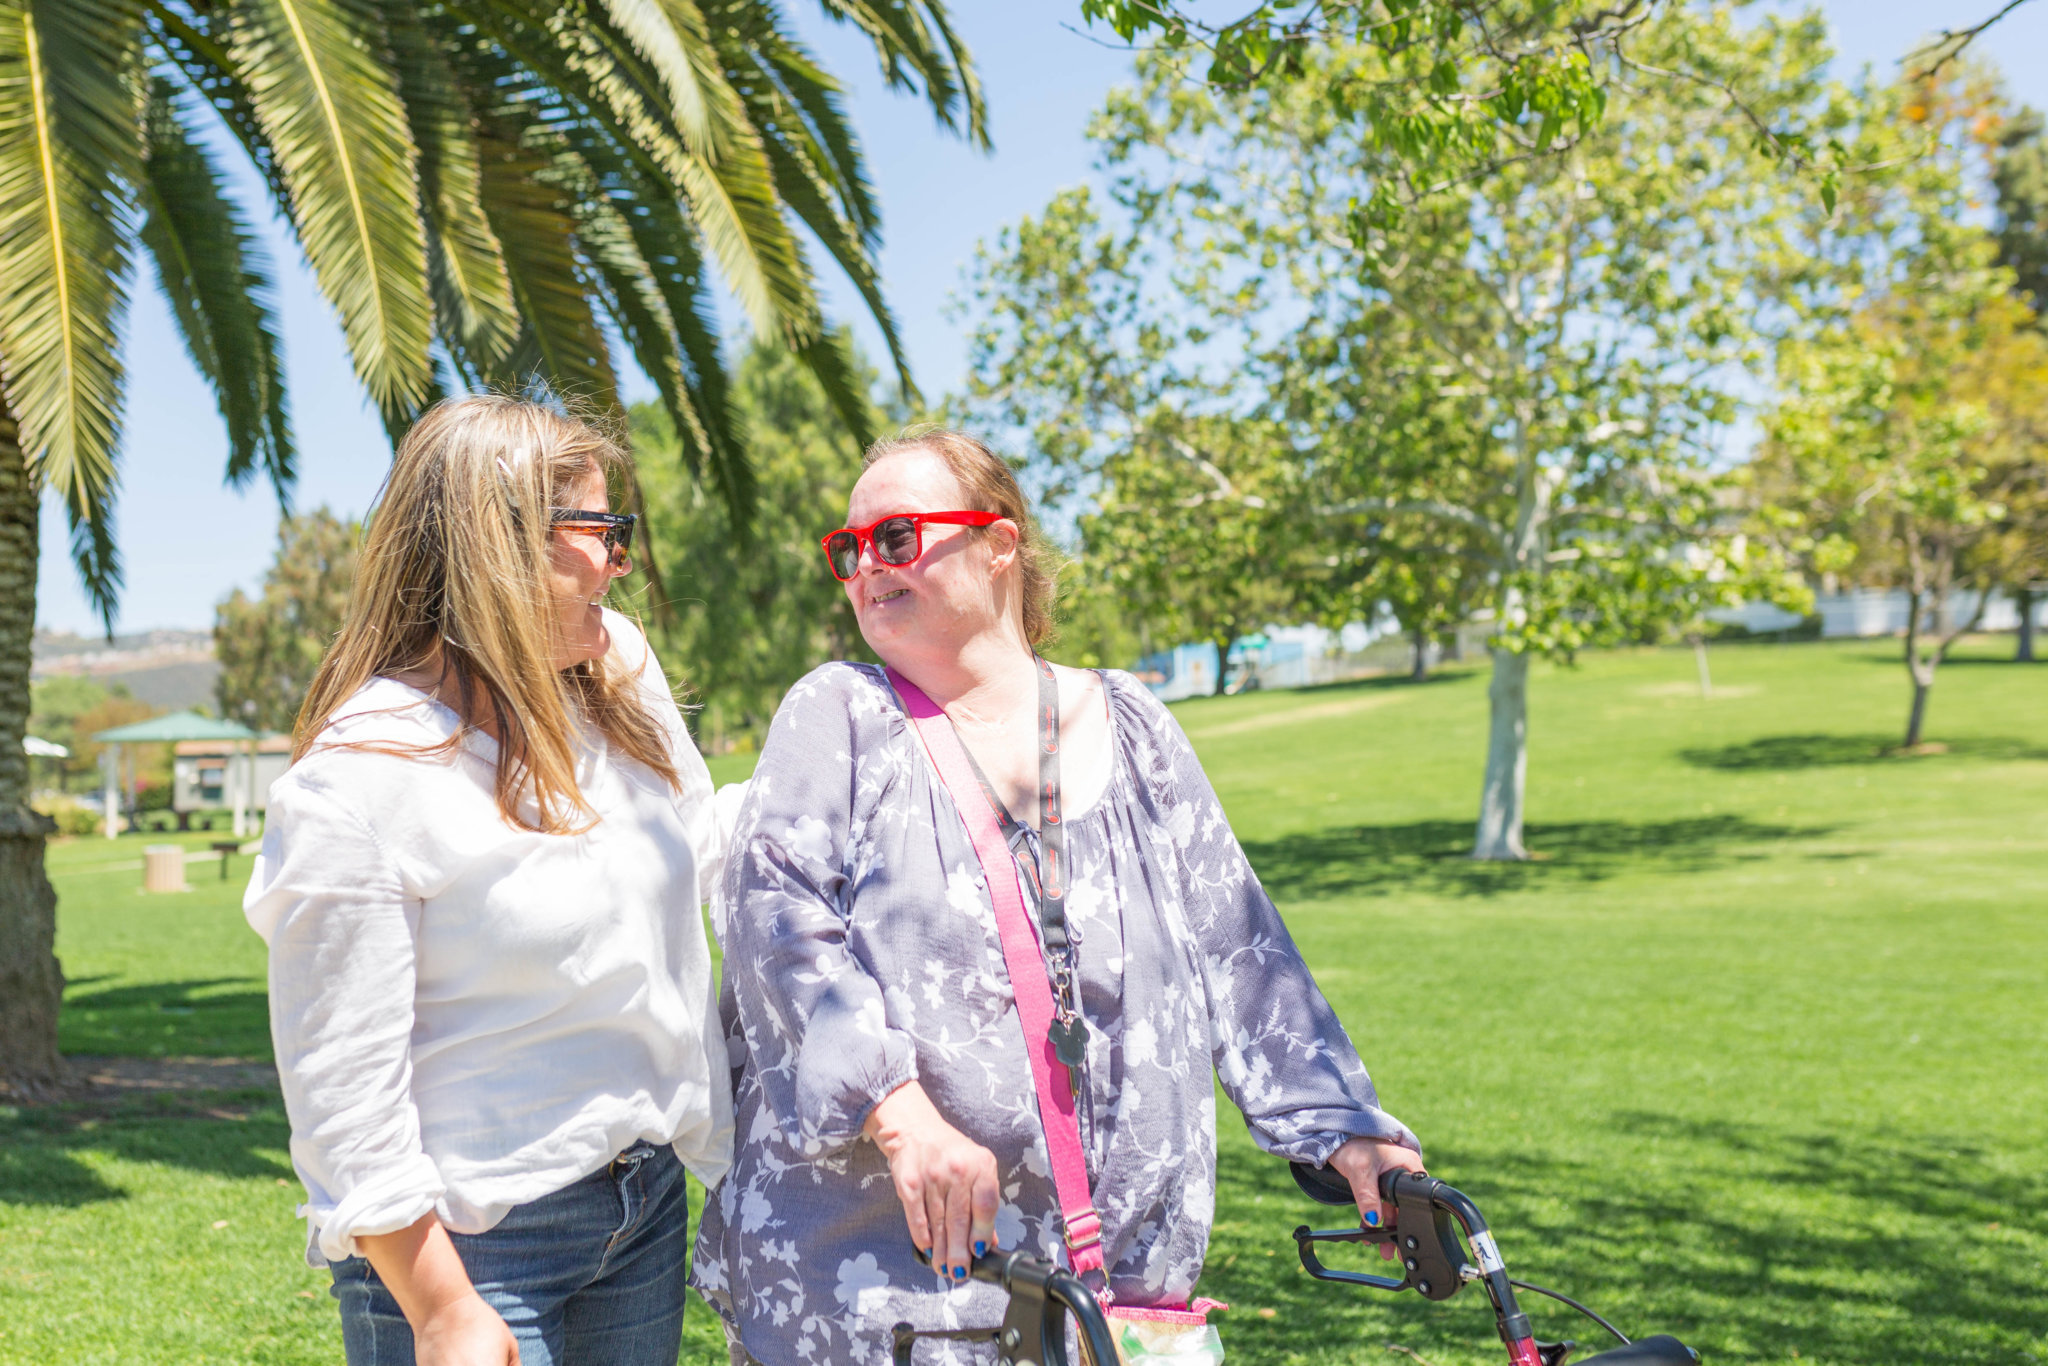 A caregiver and client walk next to each other outside in the park.